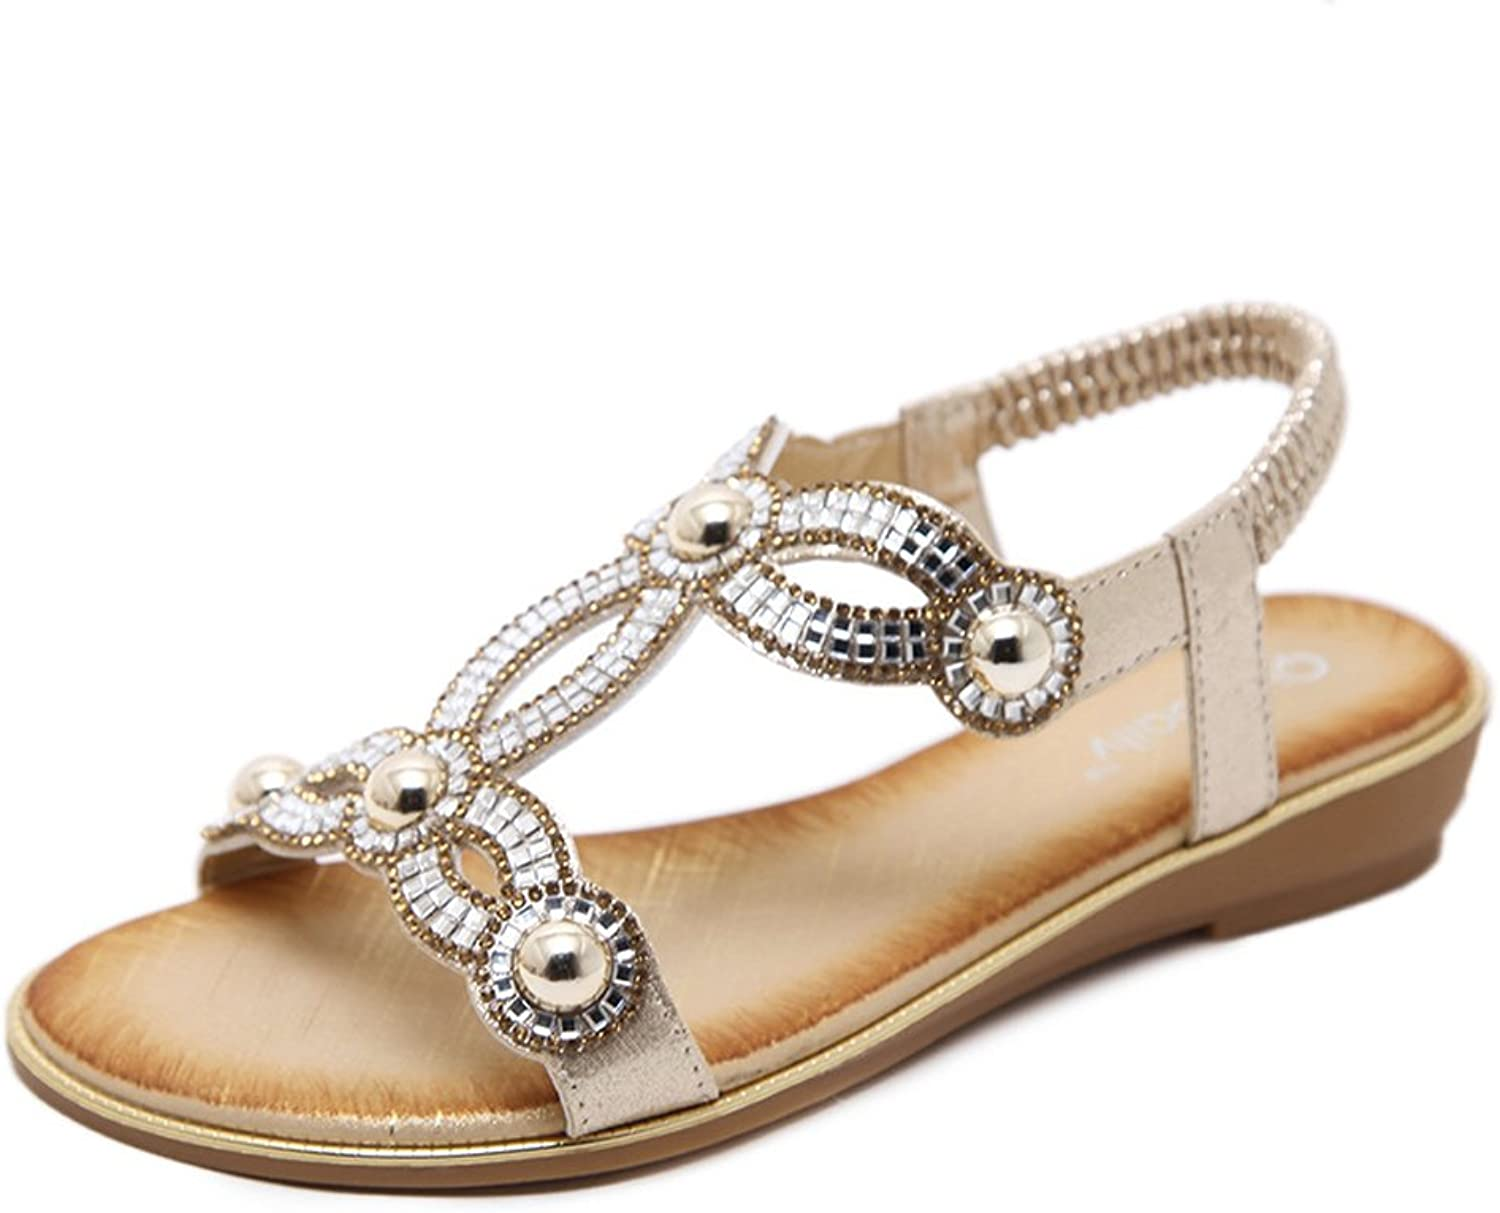 Tuoup Women's Leather Beaded Jeweled Walking Sandals Sandles